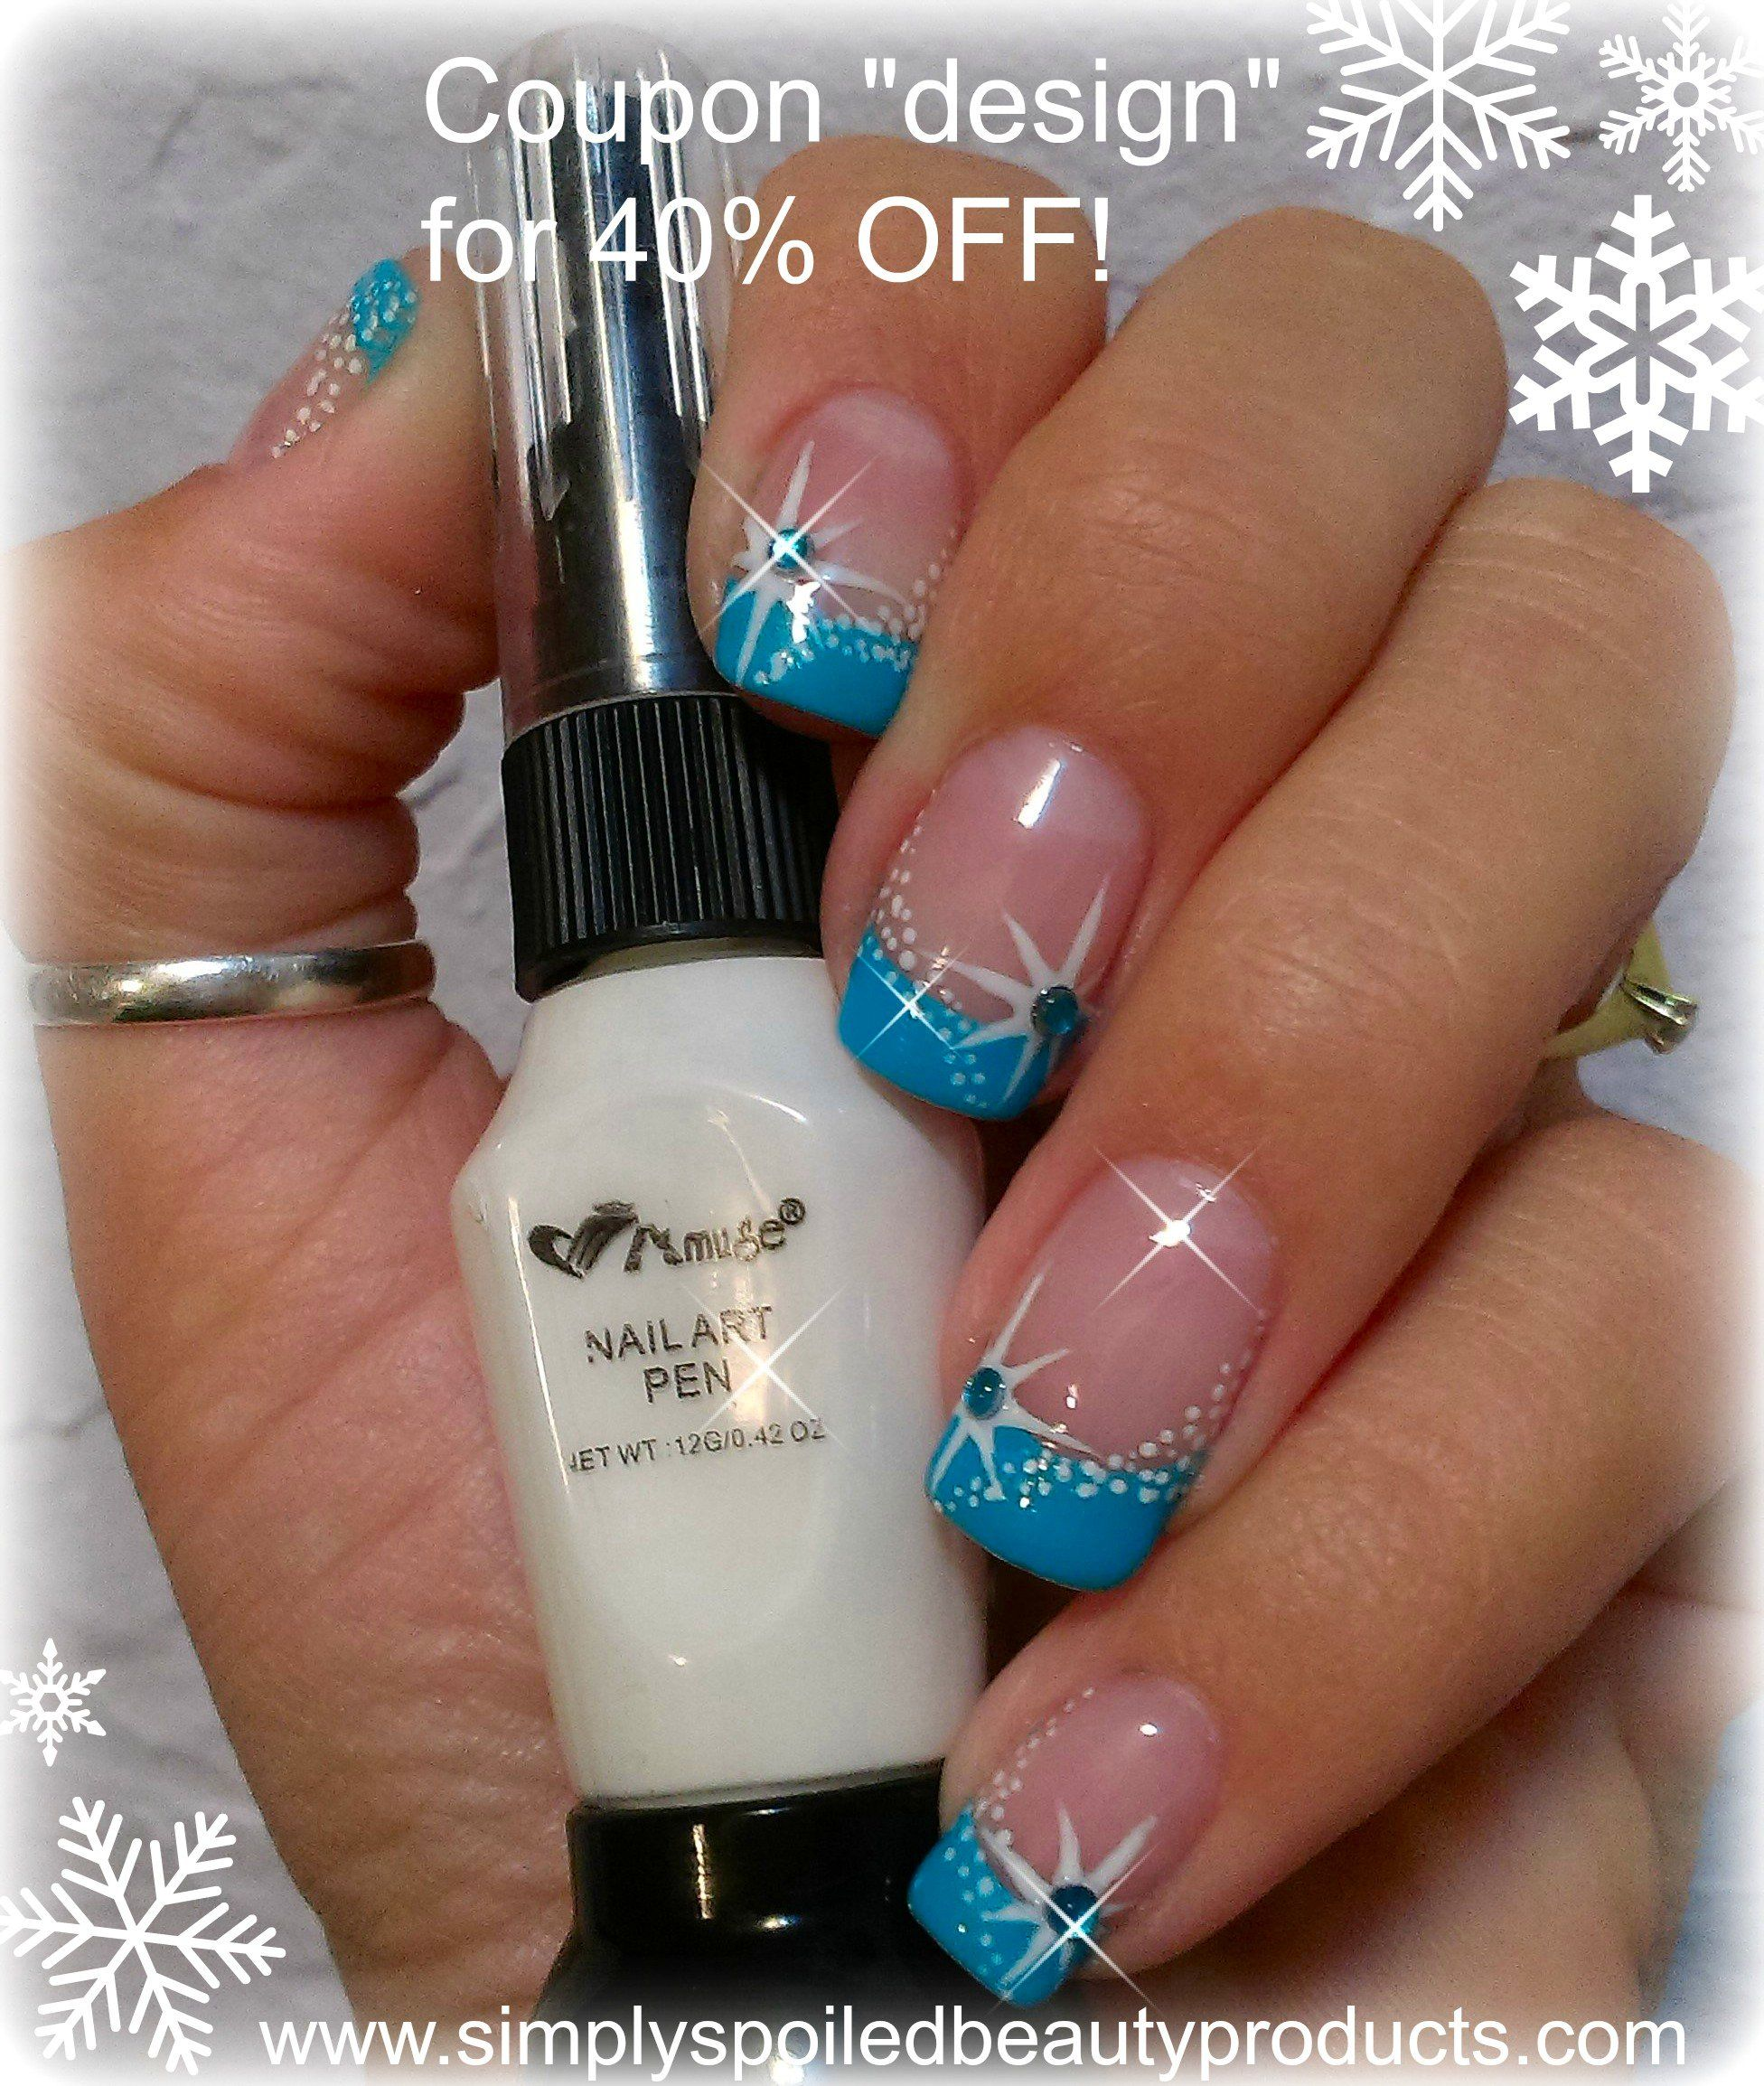 Winter Star And Snow Nail Art Using Nail Art Pen From Www